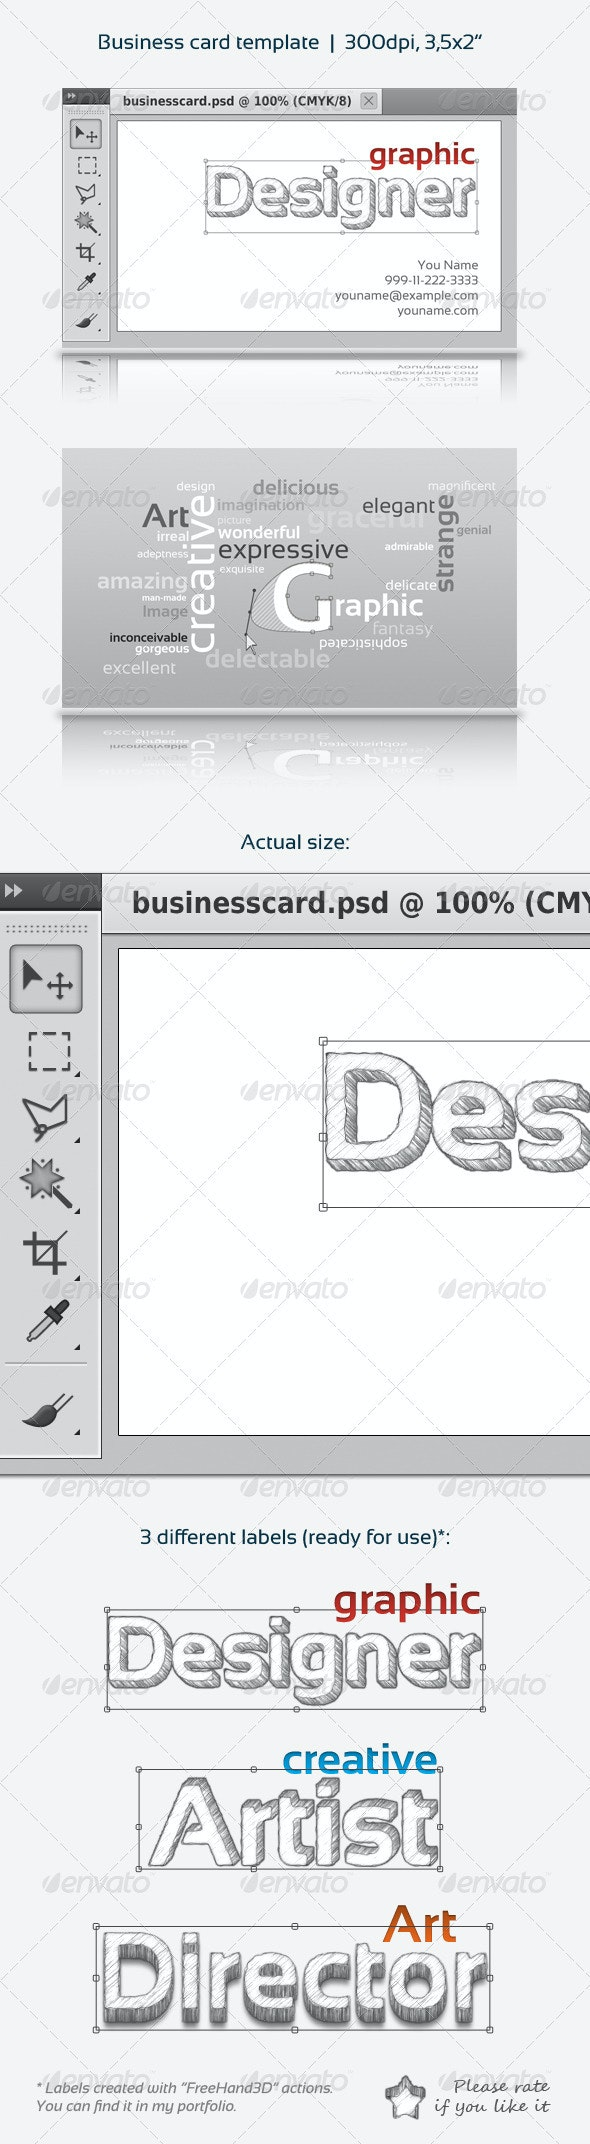 Designer Business Card: PS interface - Creative Business Cards